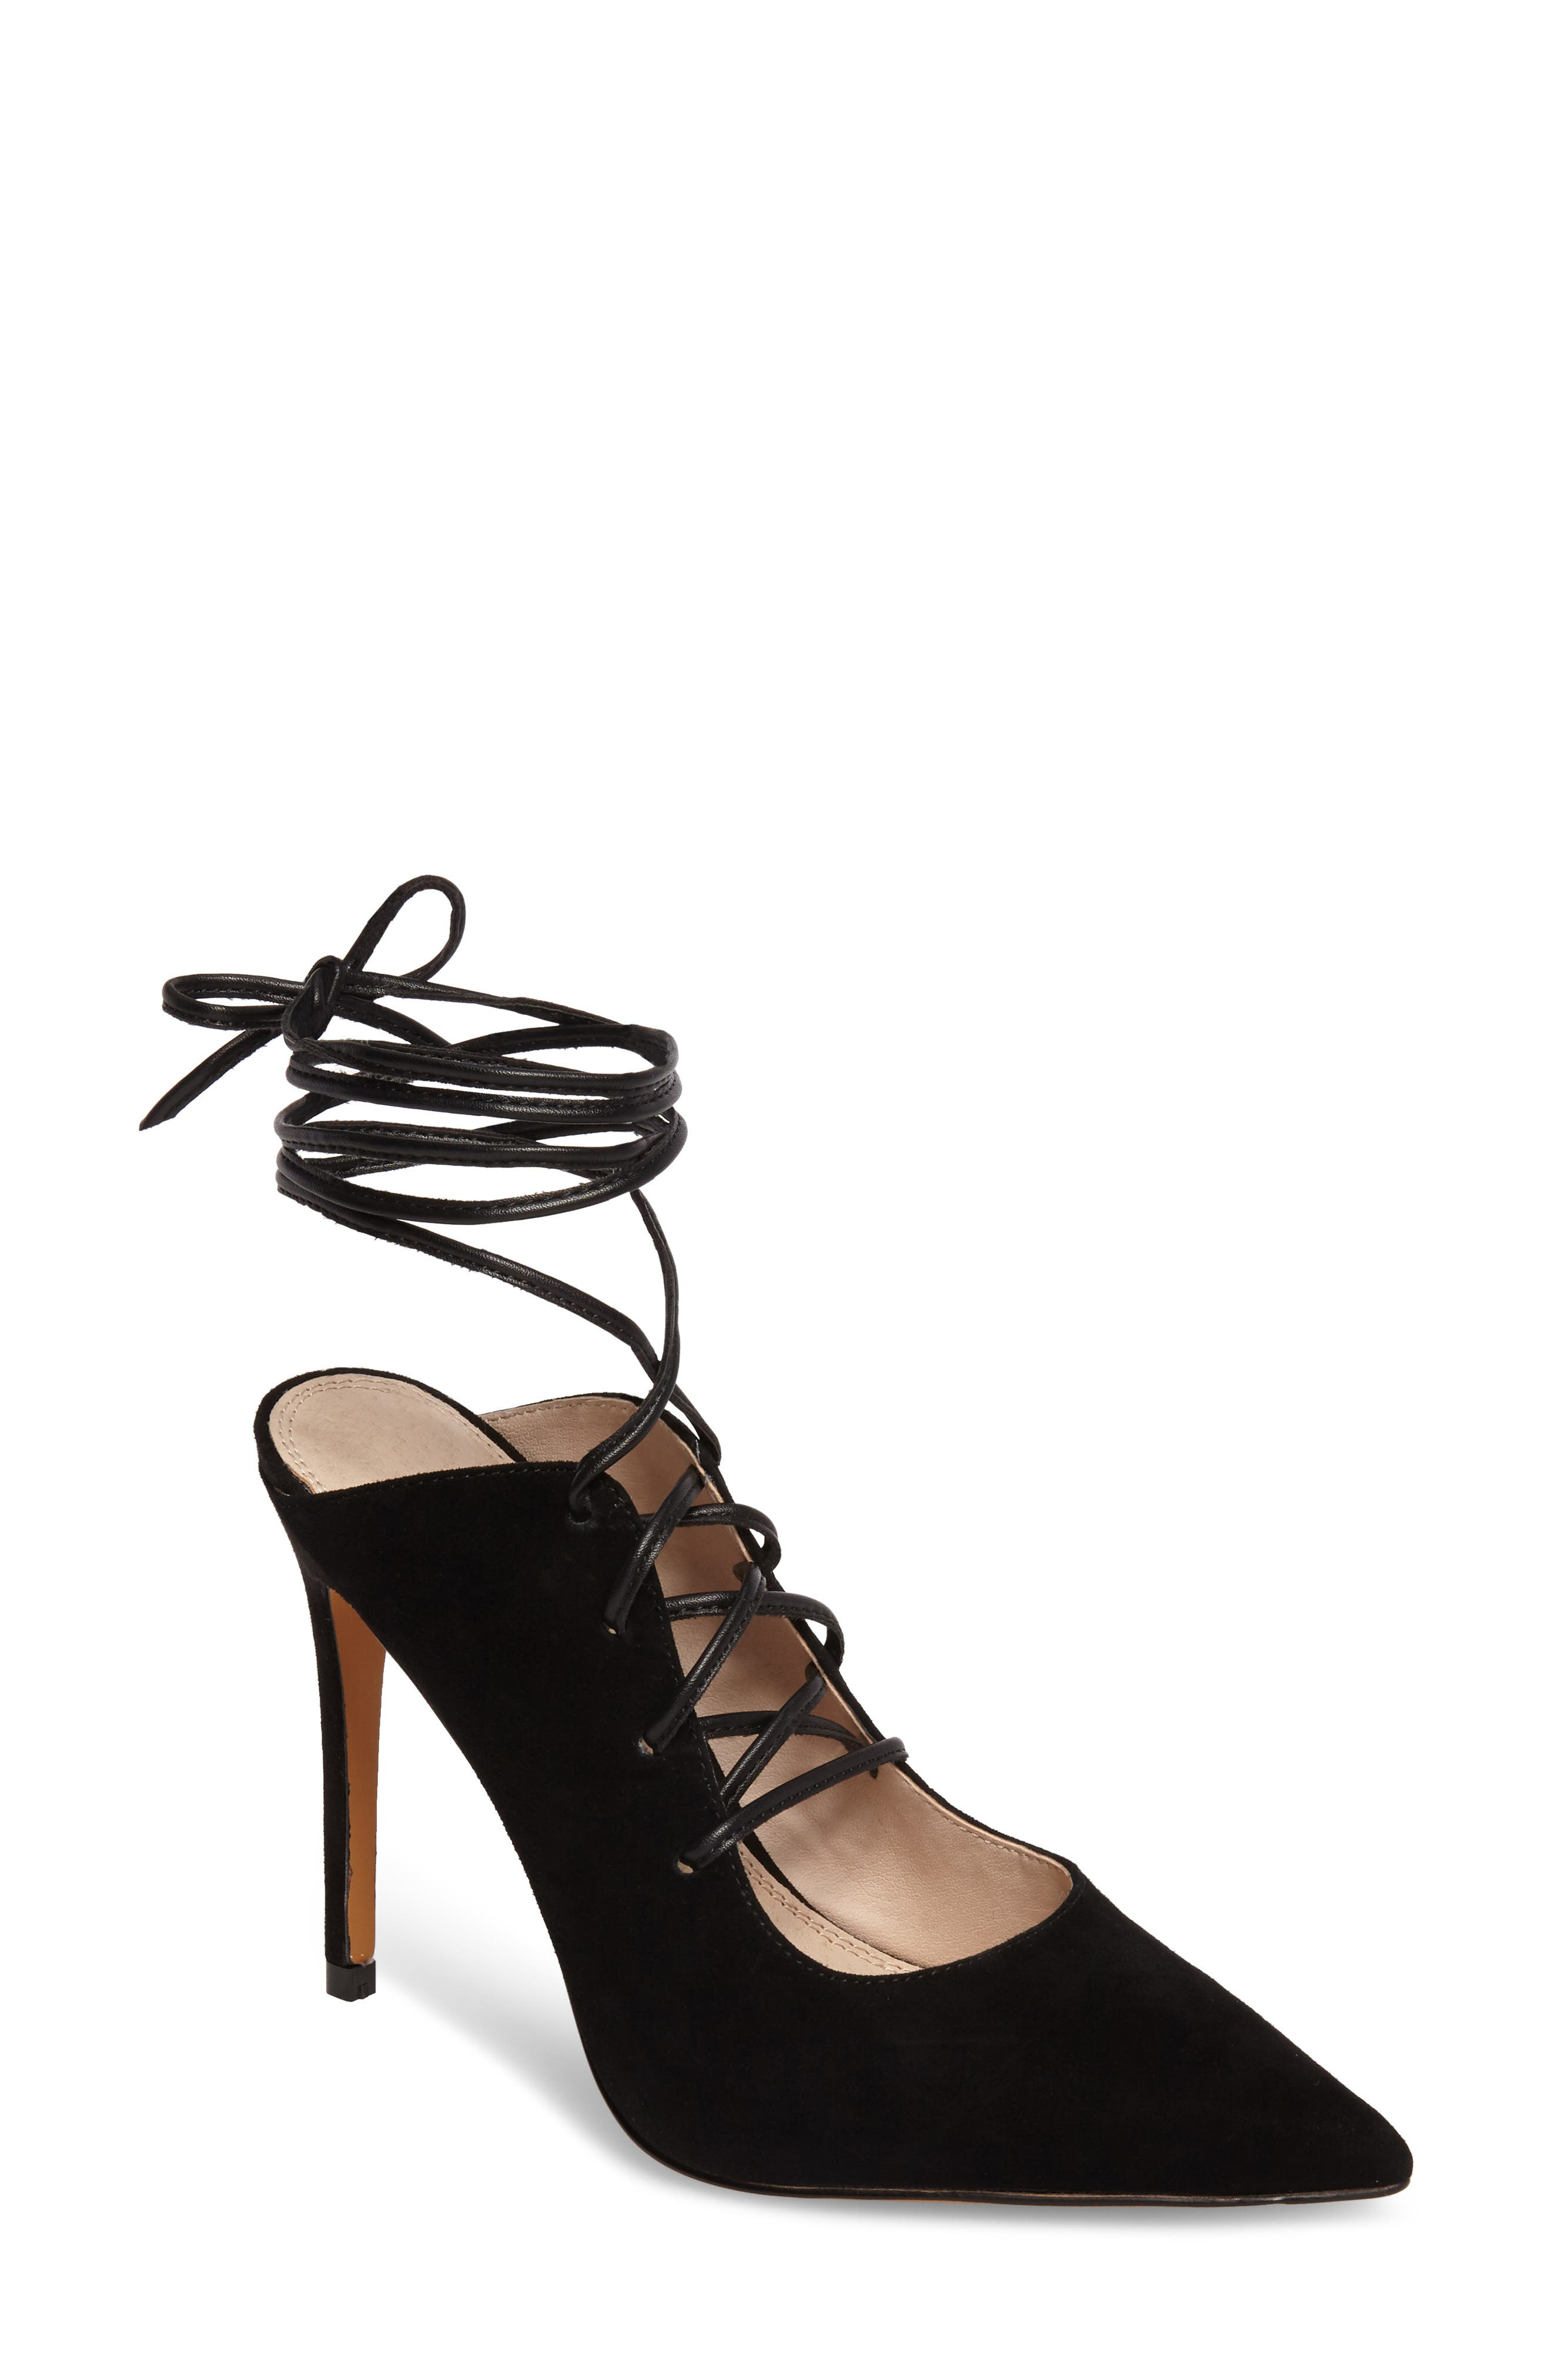 Main Image - Topshop Giggle Ghillie Pump (Women)